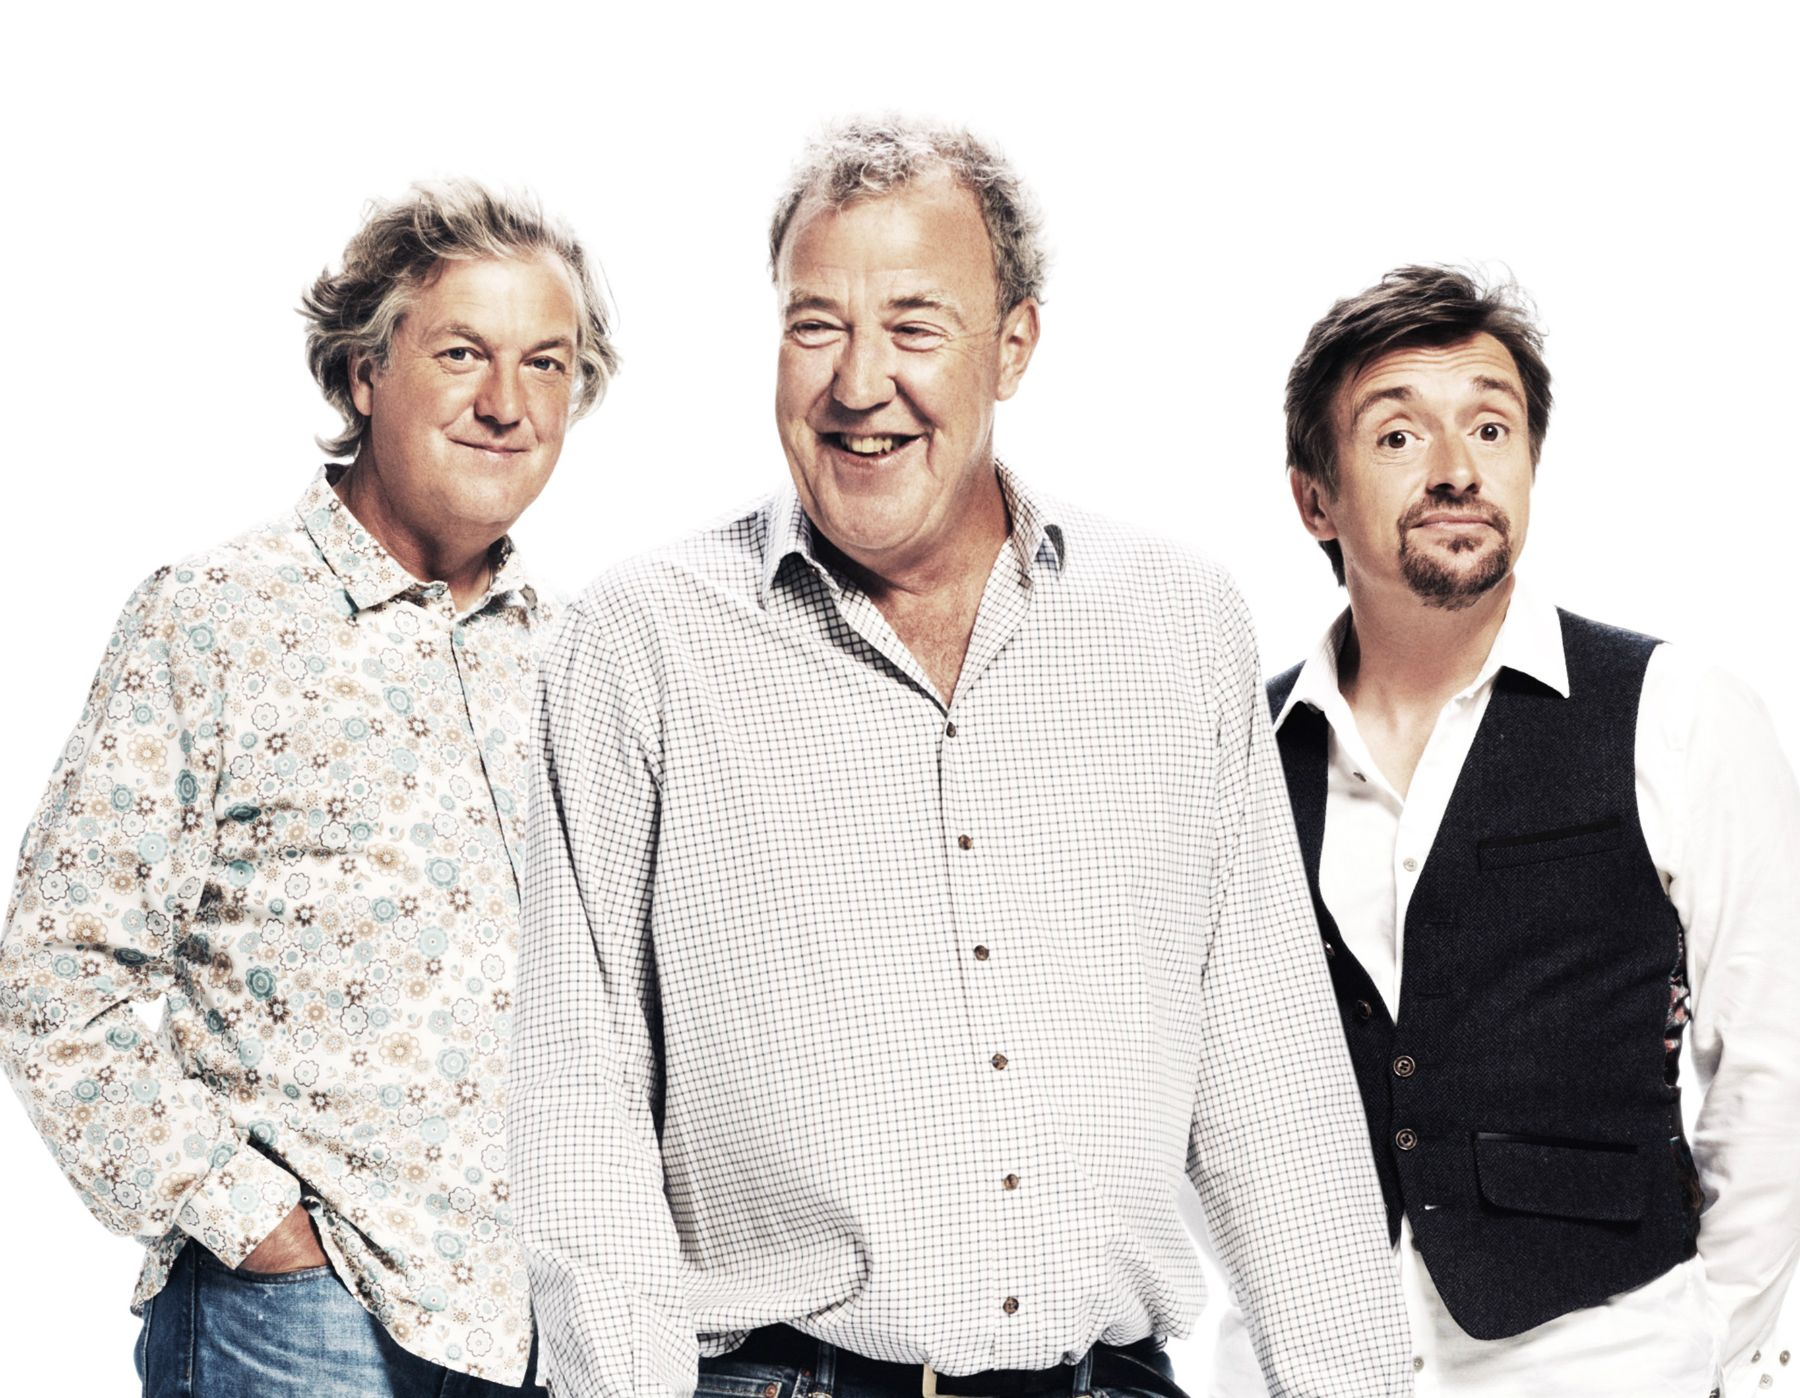 The Grand Tour on Amazon